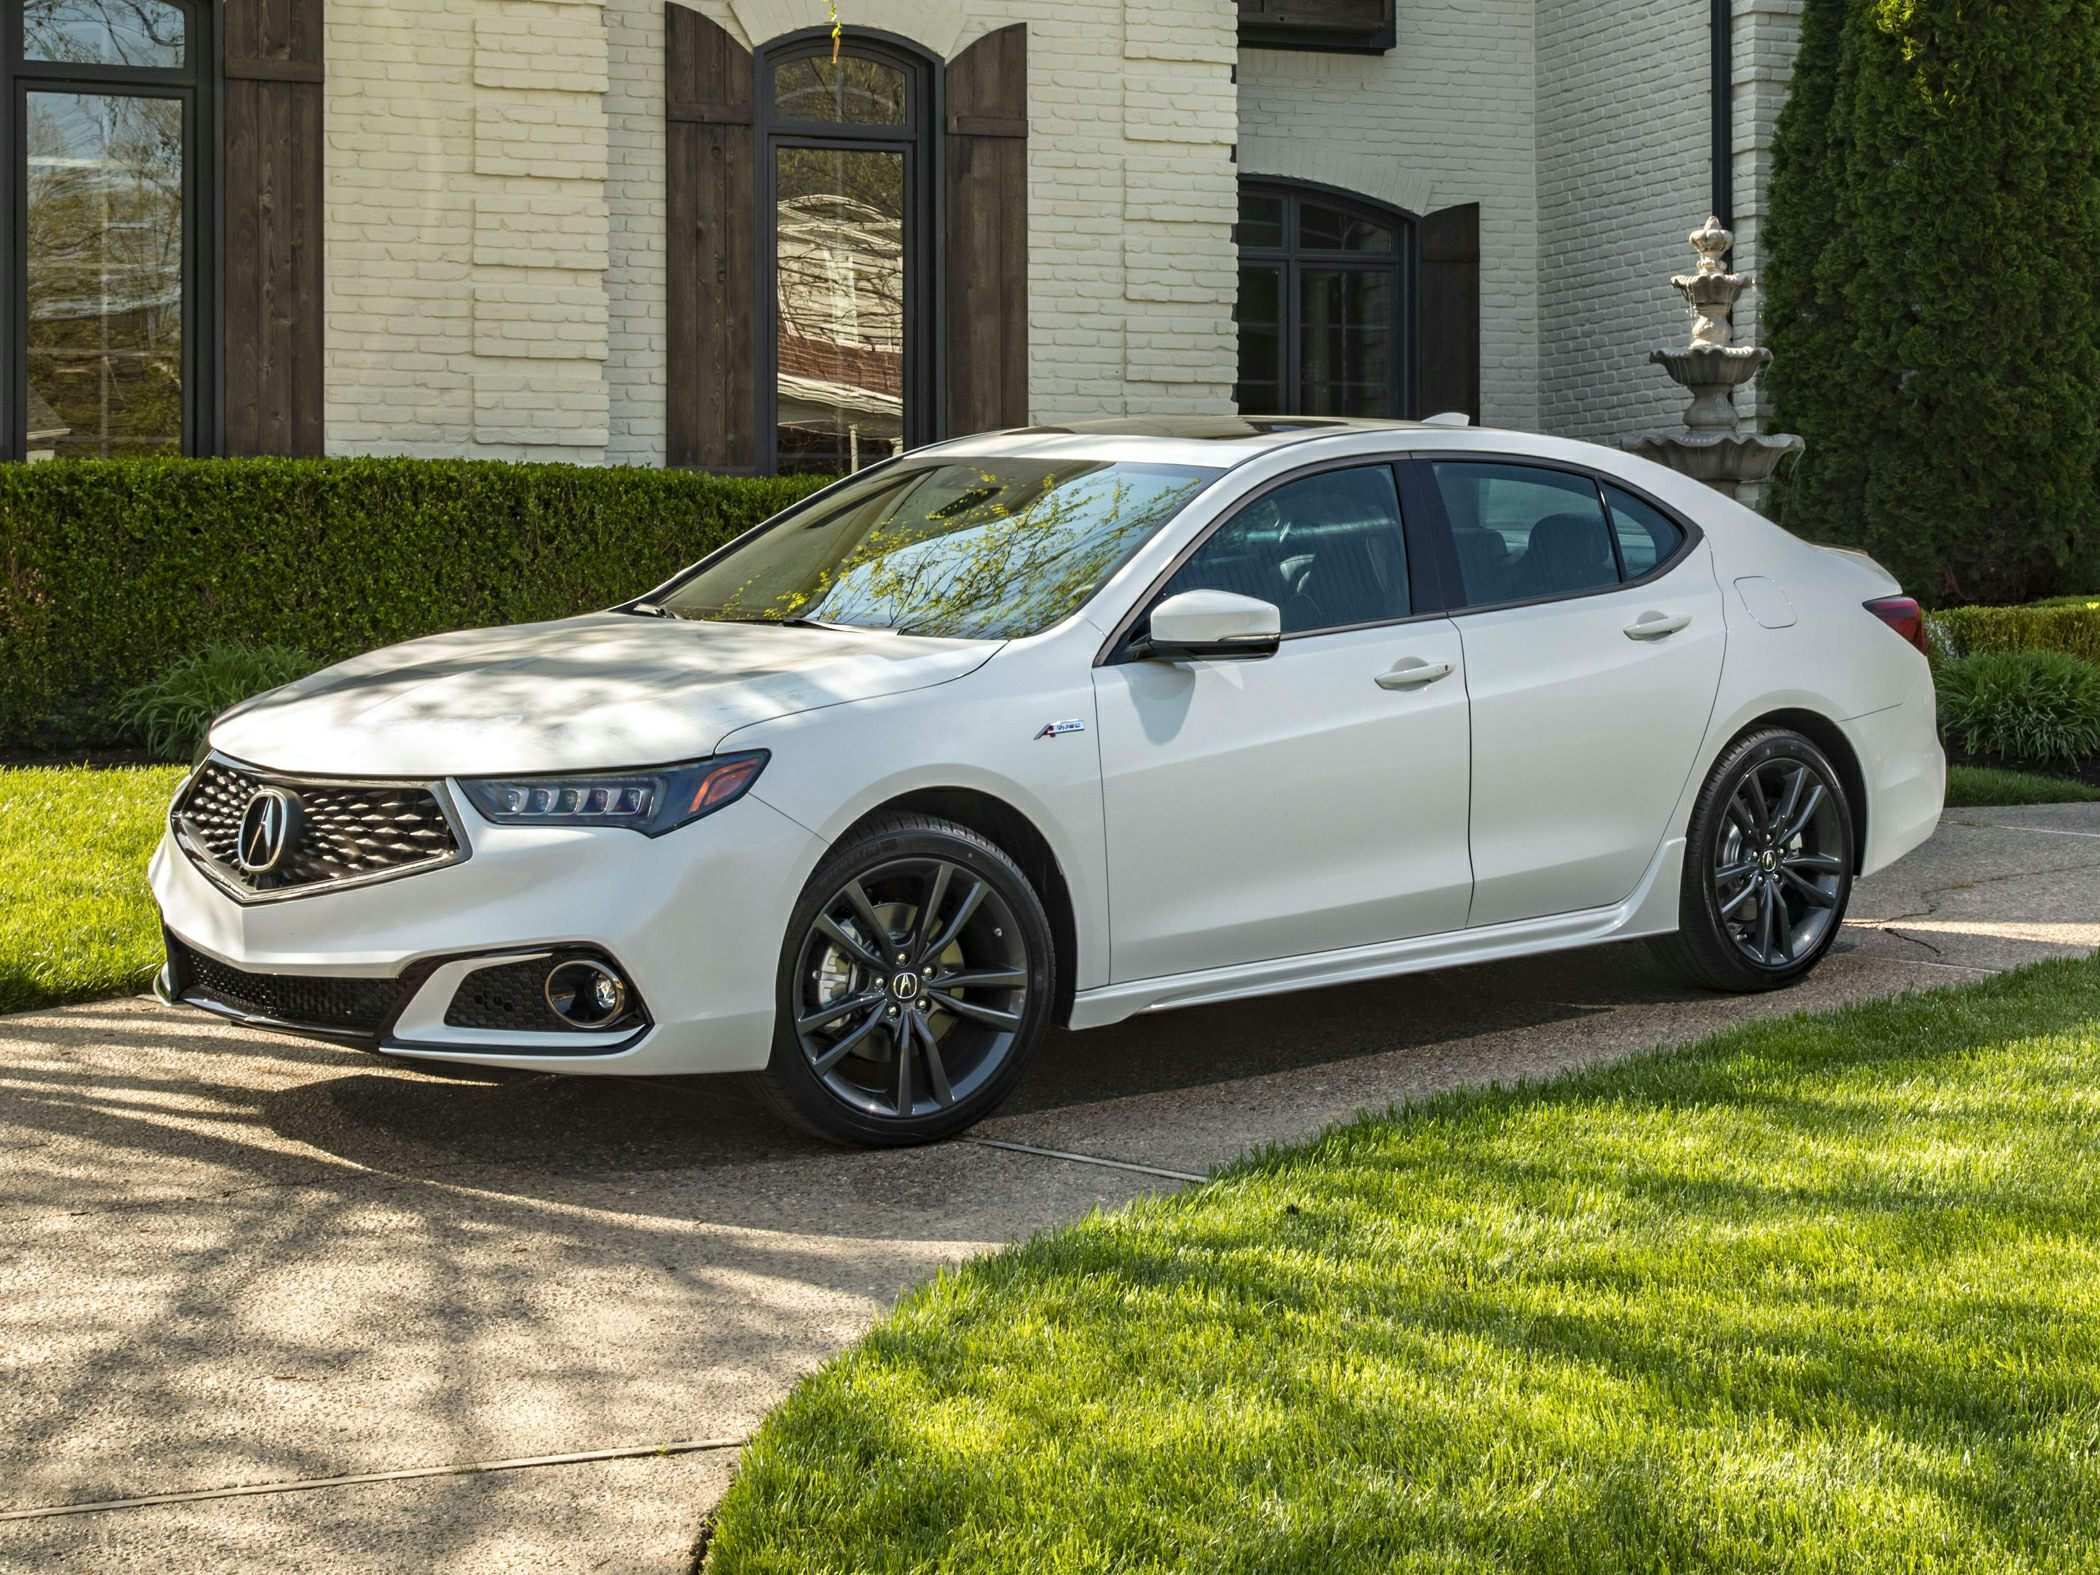 48 Best Review Acura Sedan 2020 Model by Acura Sedan 2020